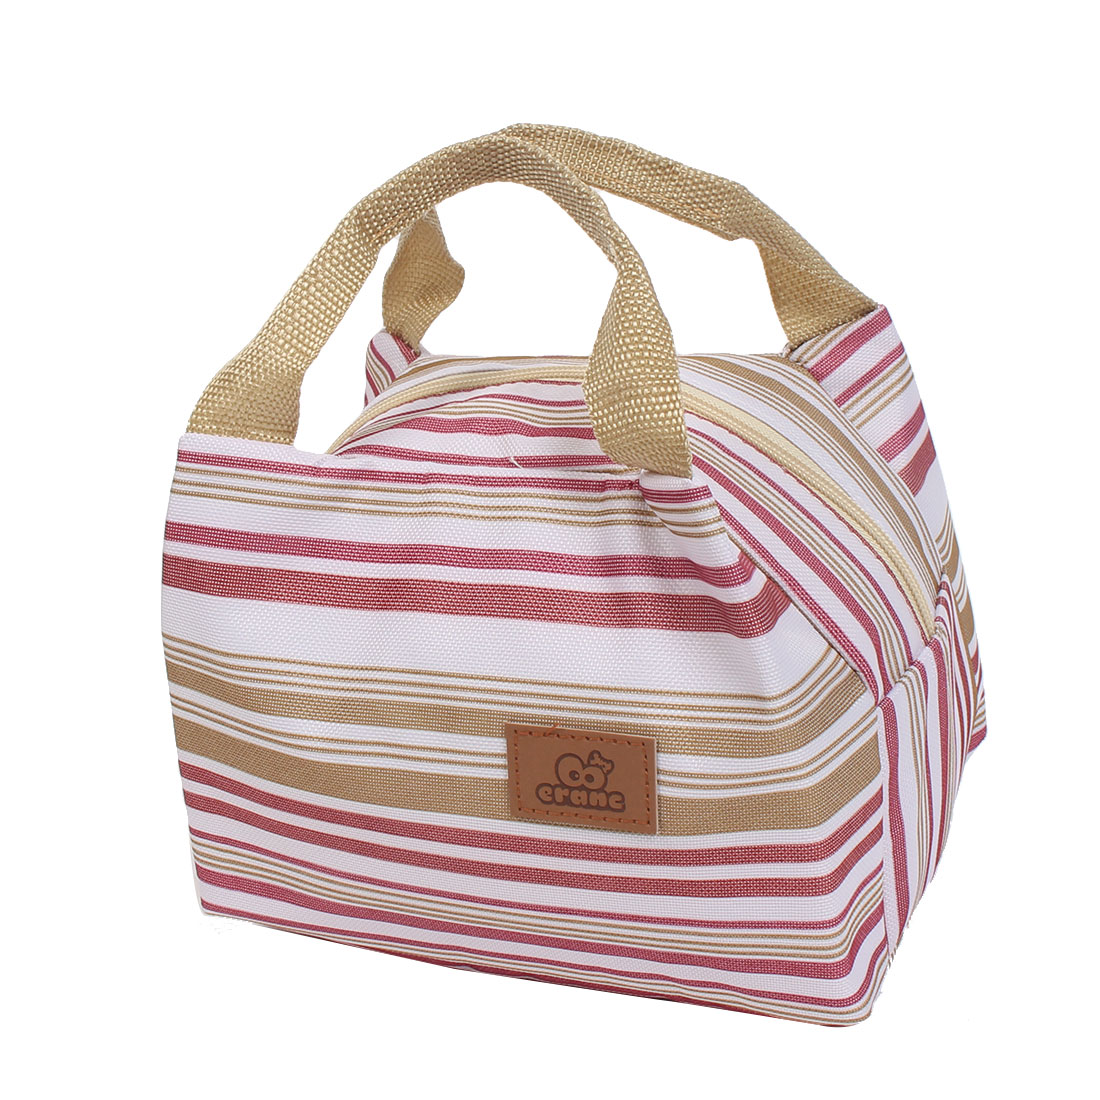 Canvas Zippered Thermal Insulation Cooler Insulated Lunch Tote Bag Multicolor Stripe Brown